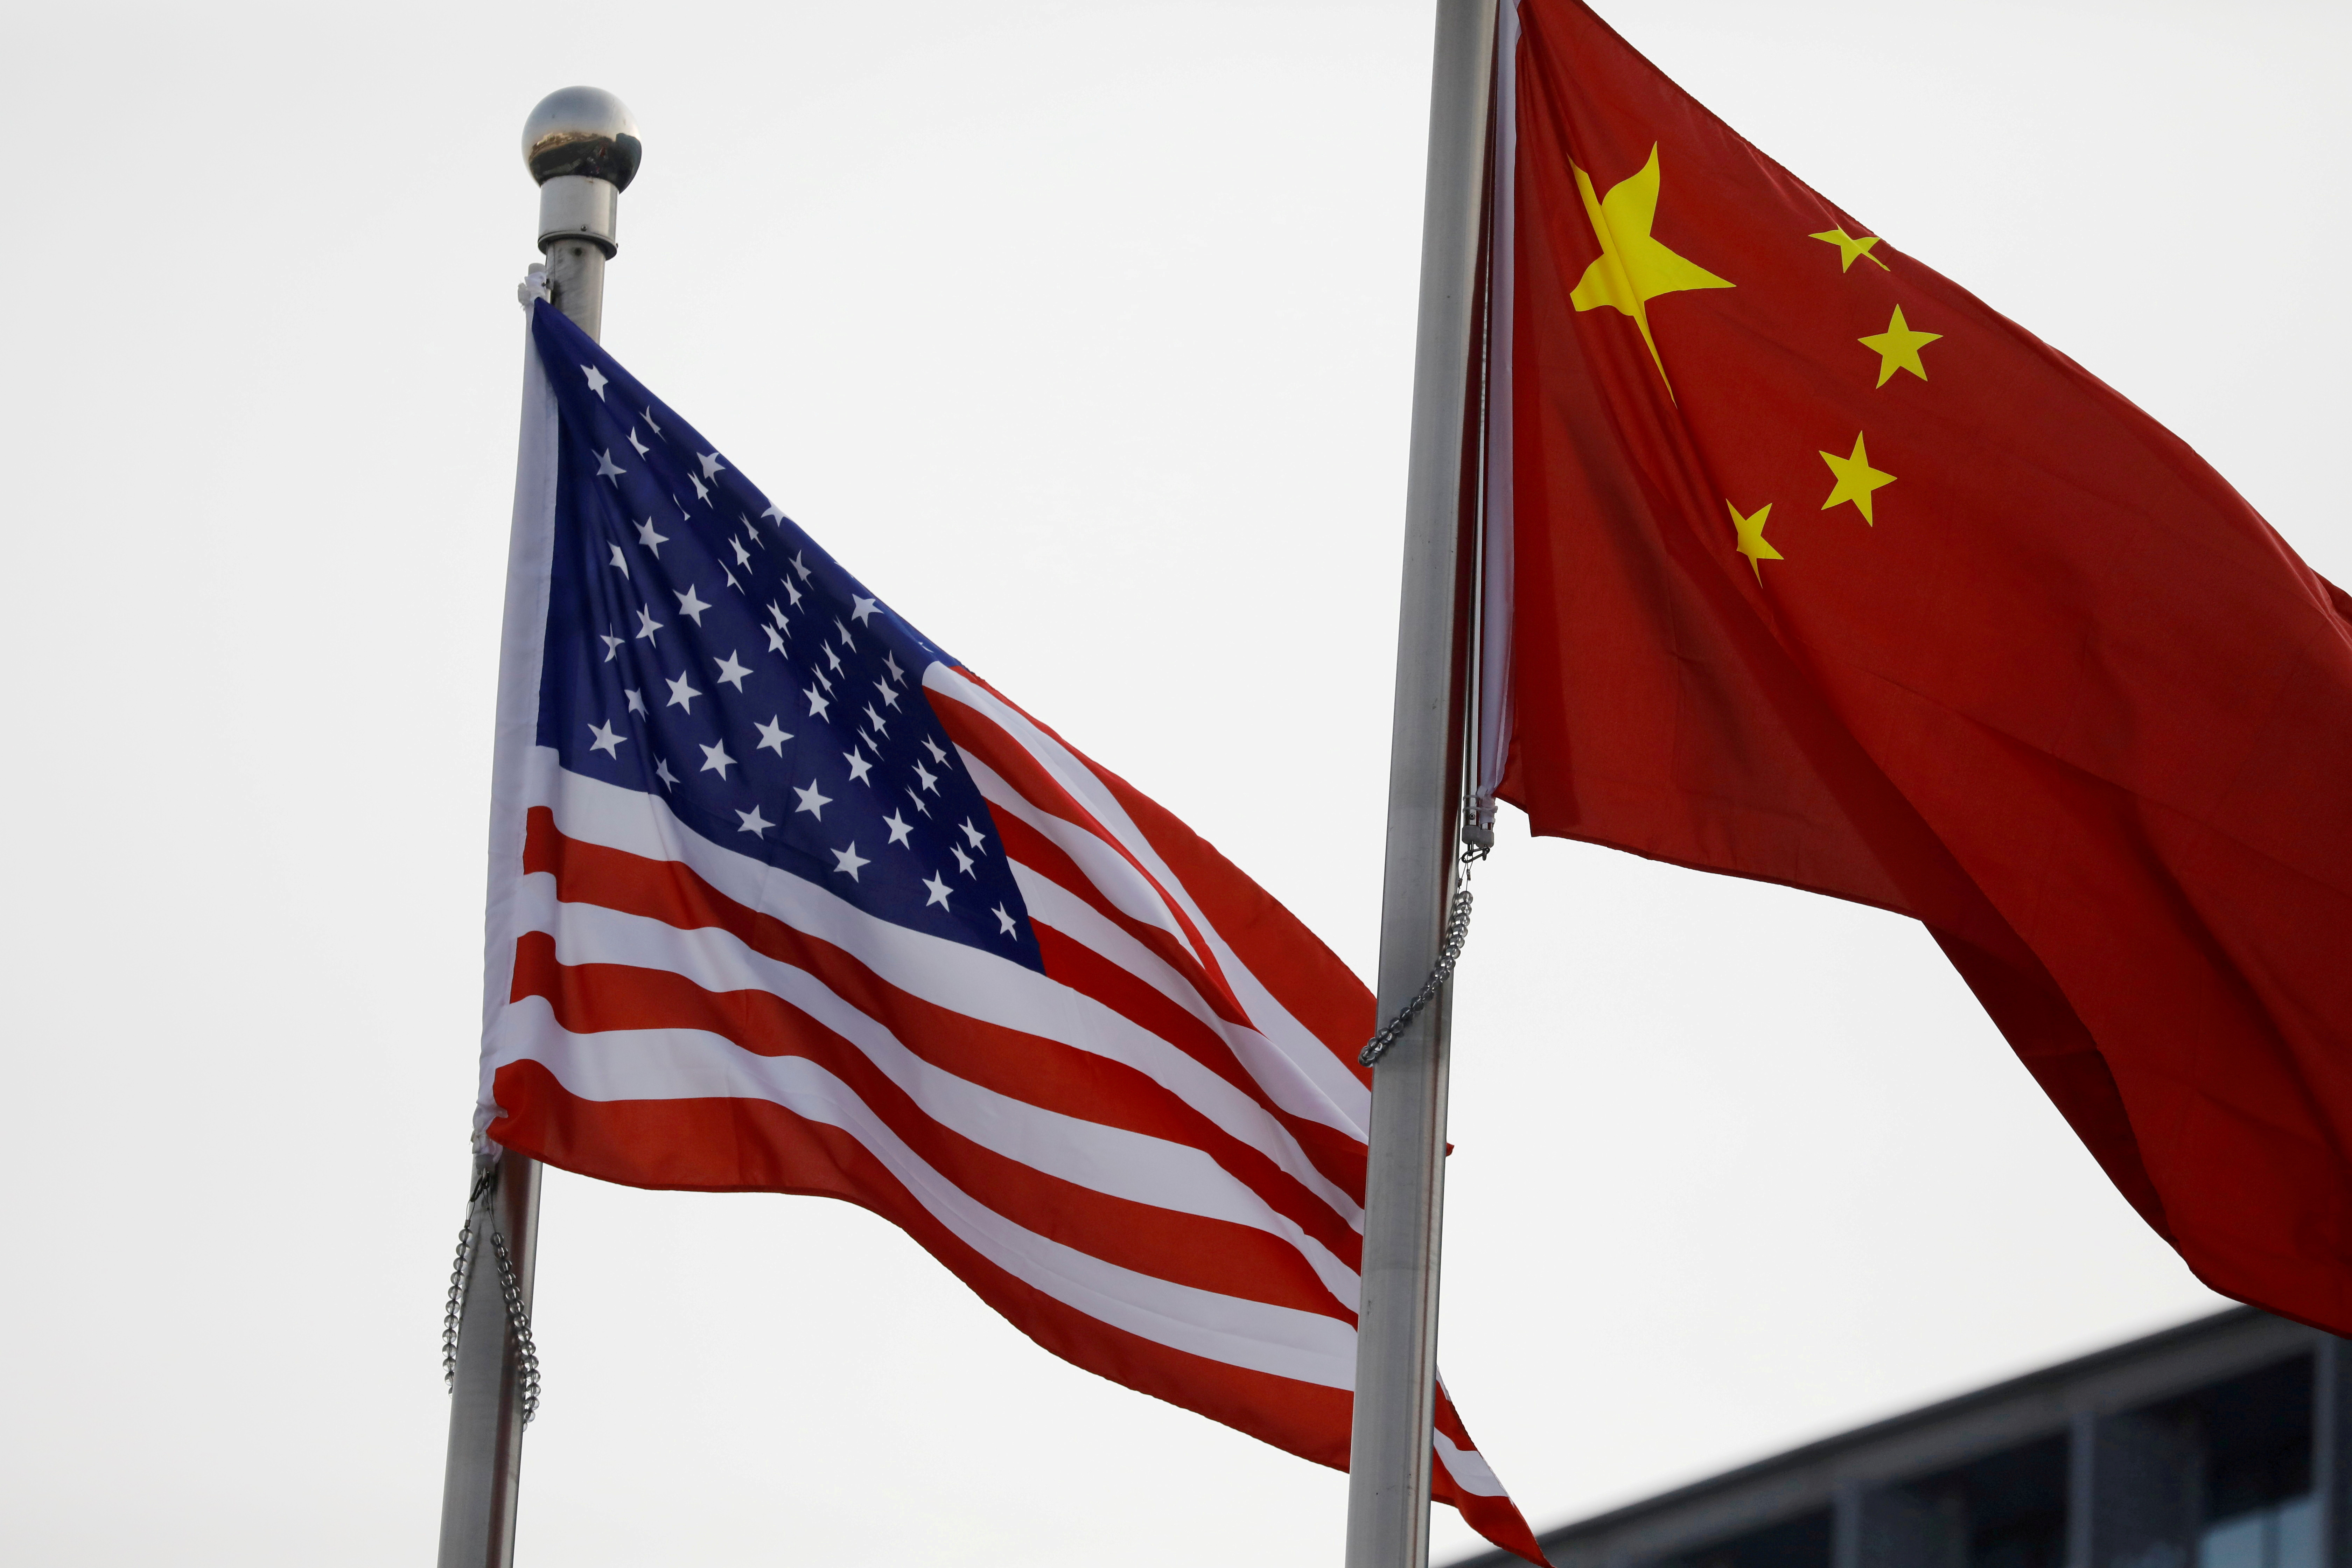 Chinese and U.S. flags flutter outside the building of an American company in Beijing, China January 21, 2021. REUTERS/Tingshu Wang/File Photo